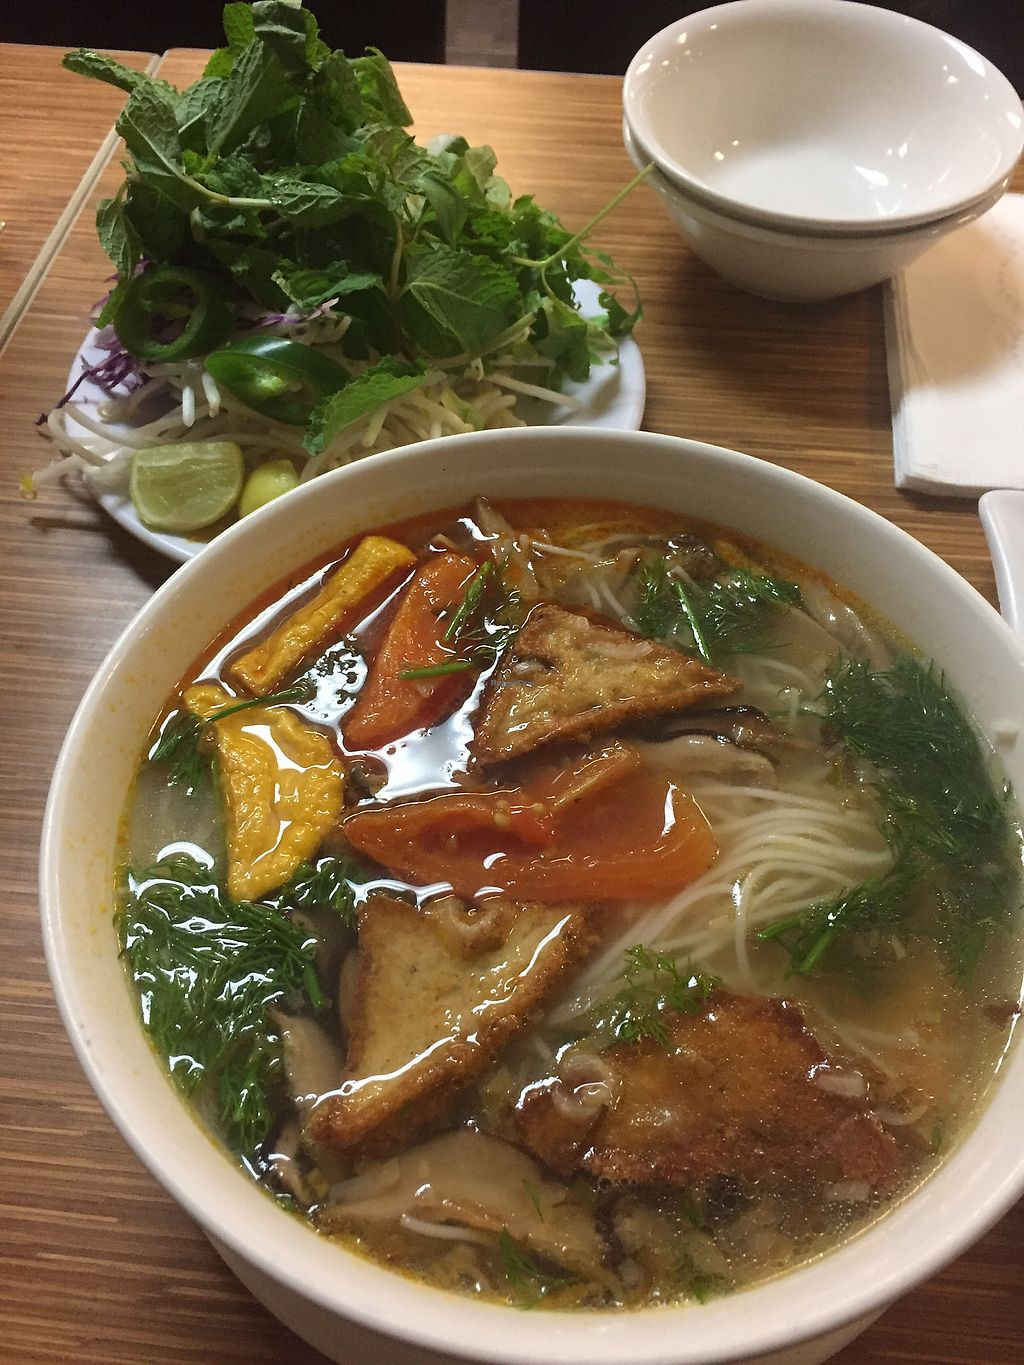 """Photo of Nhan Duc Hanh  by <a href=""""/members/profile/H"""">H</a> <br/>One of the noodle soups <br/> October 13, 2017  - <a href='/contact/abuse/image/73487/314714'>Report</a>"""